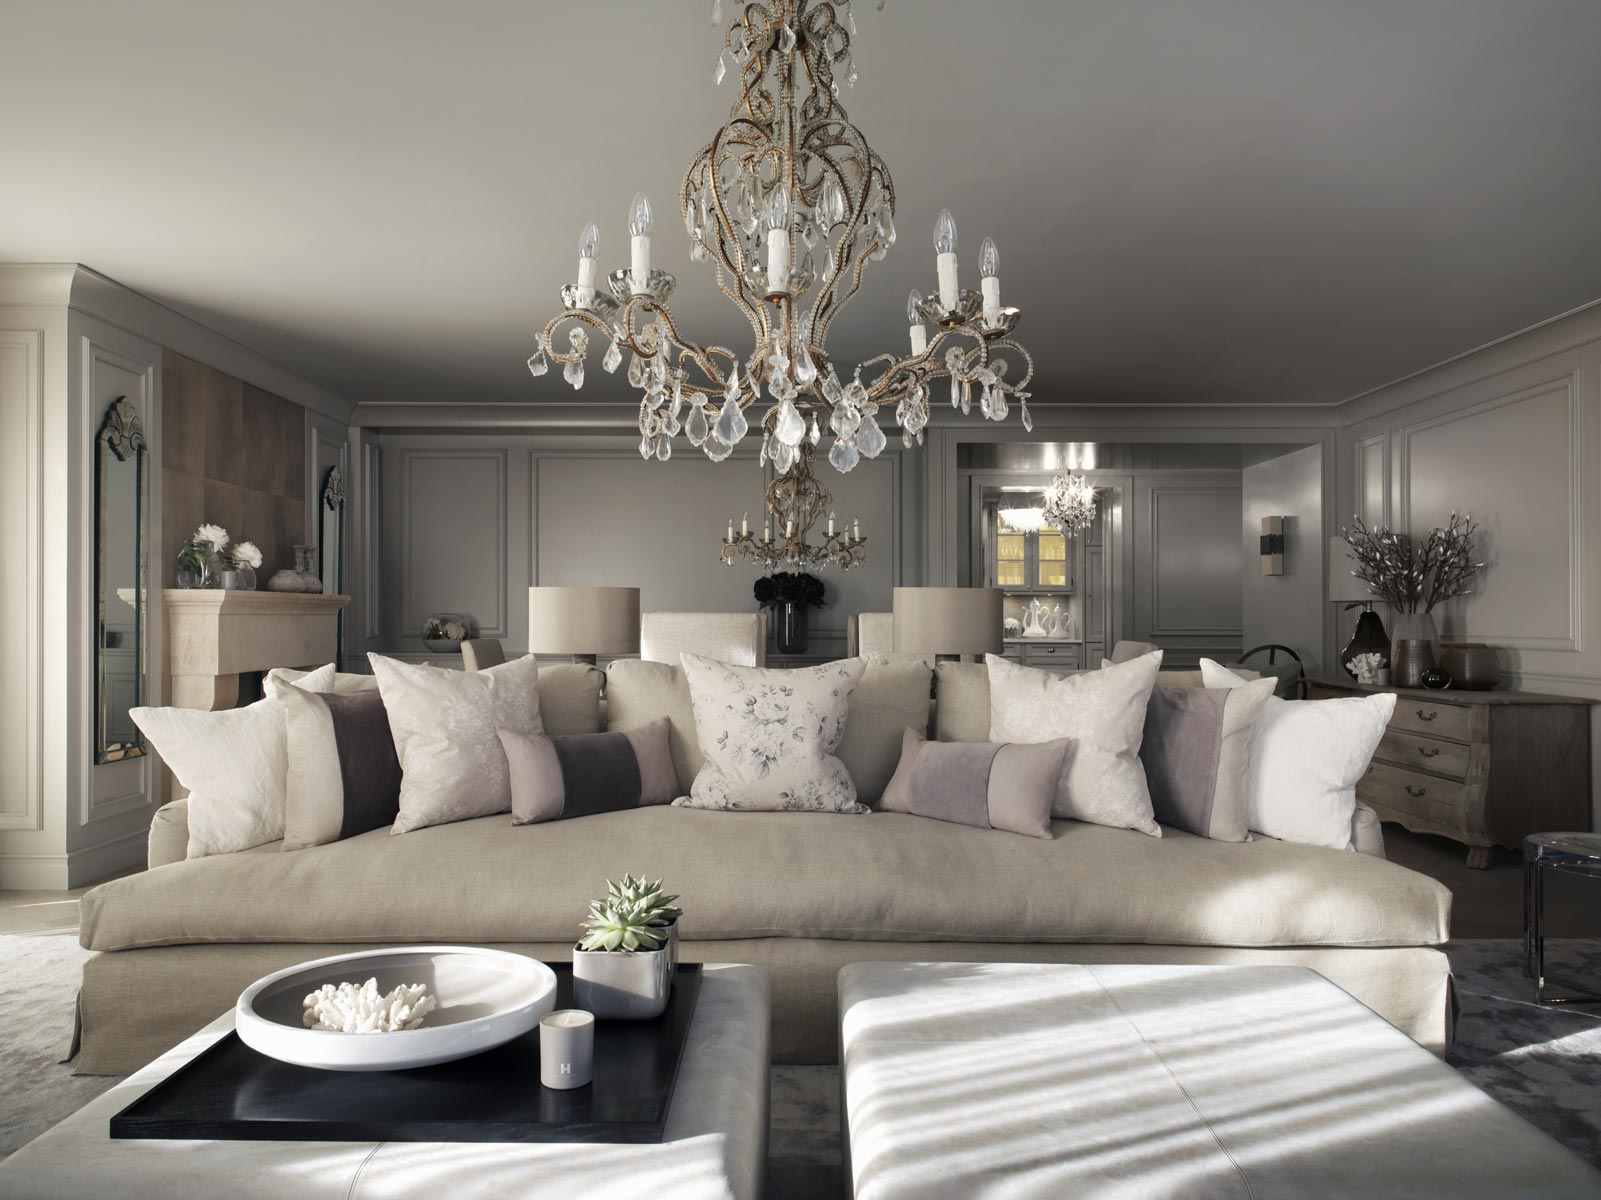 Top 10 kelly hoppen design ideas Interior decorating ideas